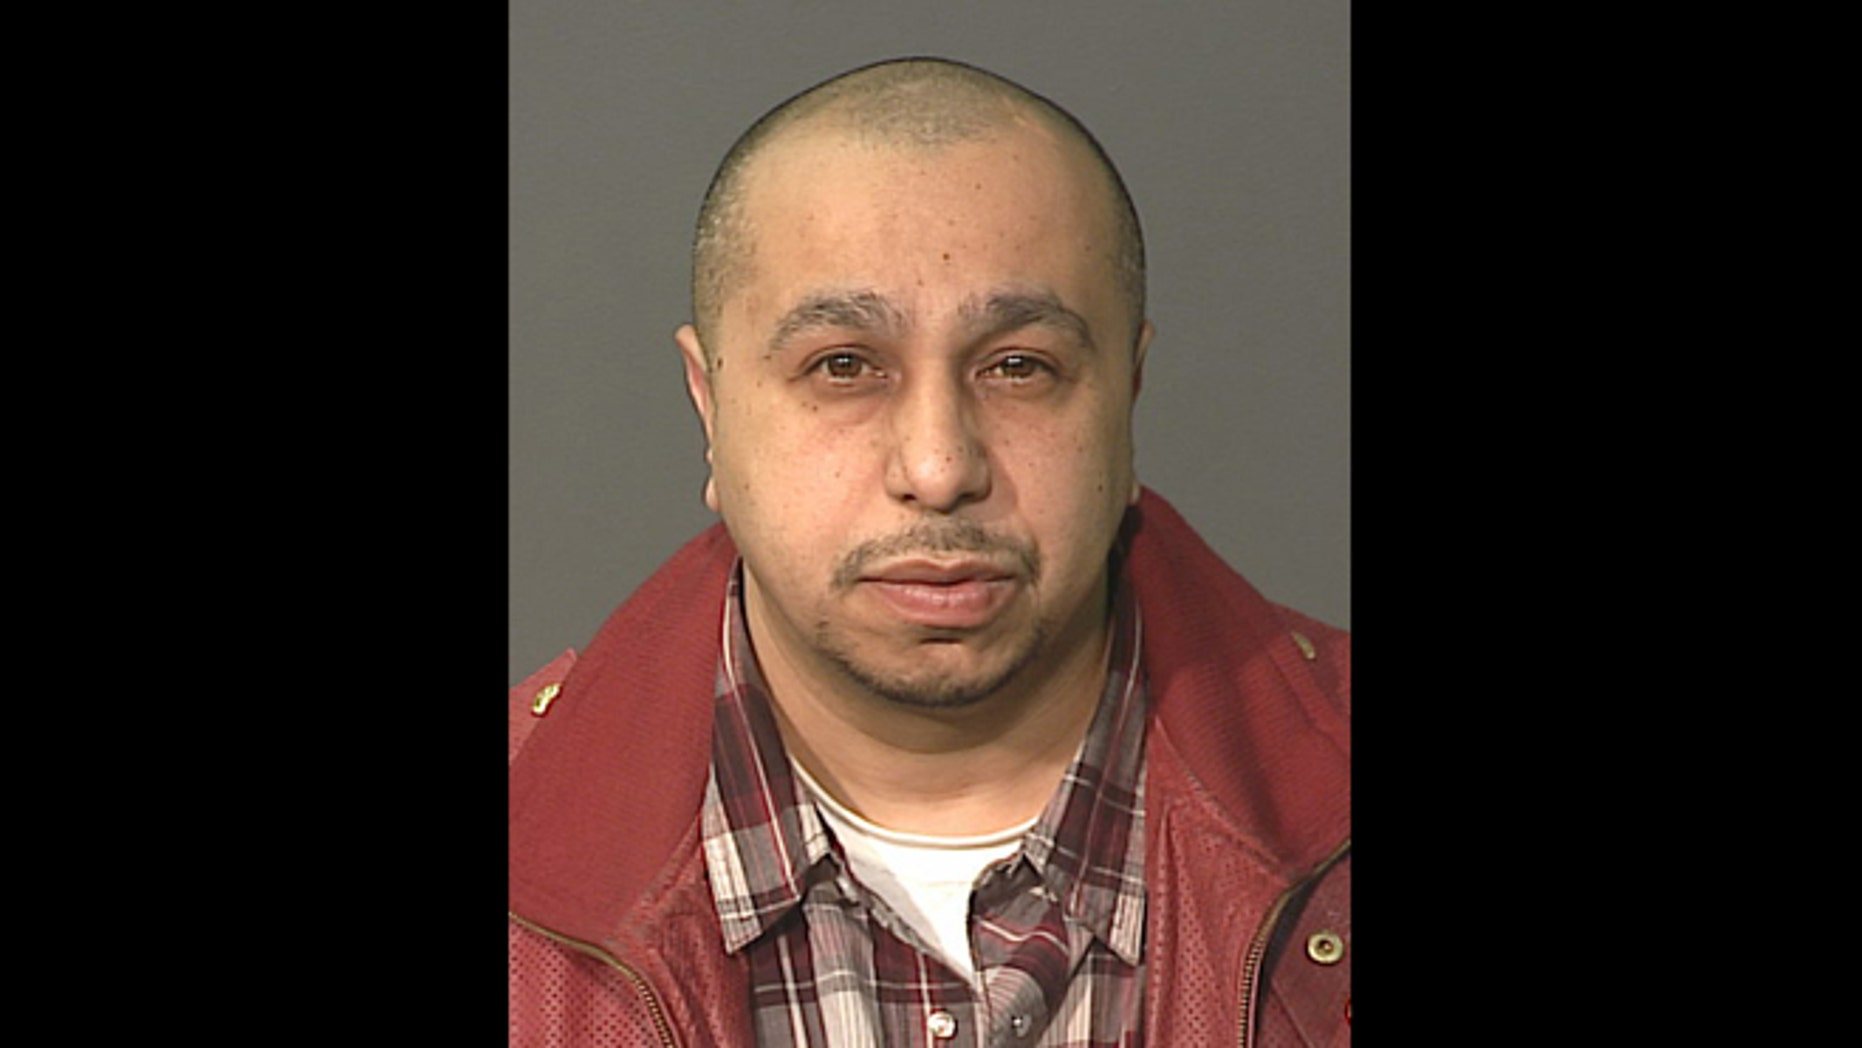 In this undated file photo released by the New York City Police Department, Julio Acevedo is shown. On Tuesday, March 19, 2013, a New York City prosecutor says that manslaughter has been added to the charges against Acevedo in the car crash that killed a pregnant woman and her husband earlier this month.